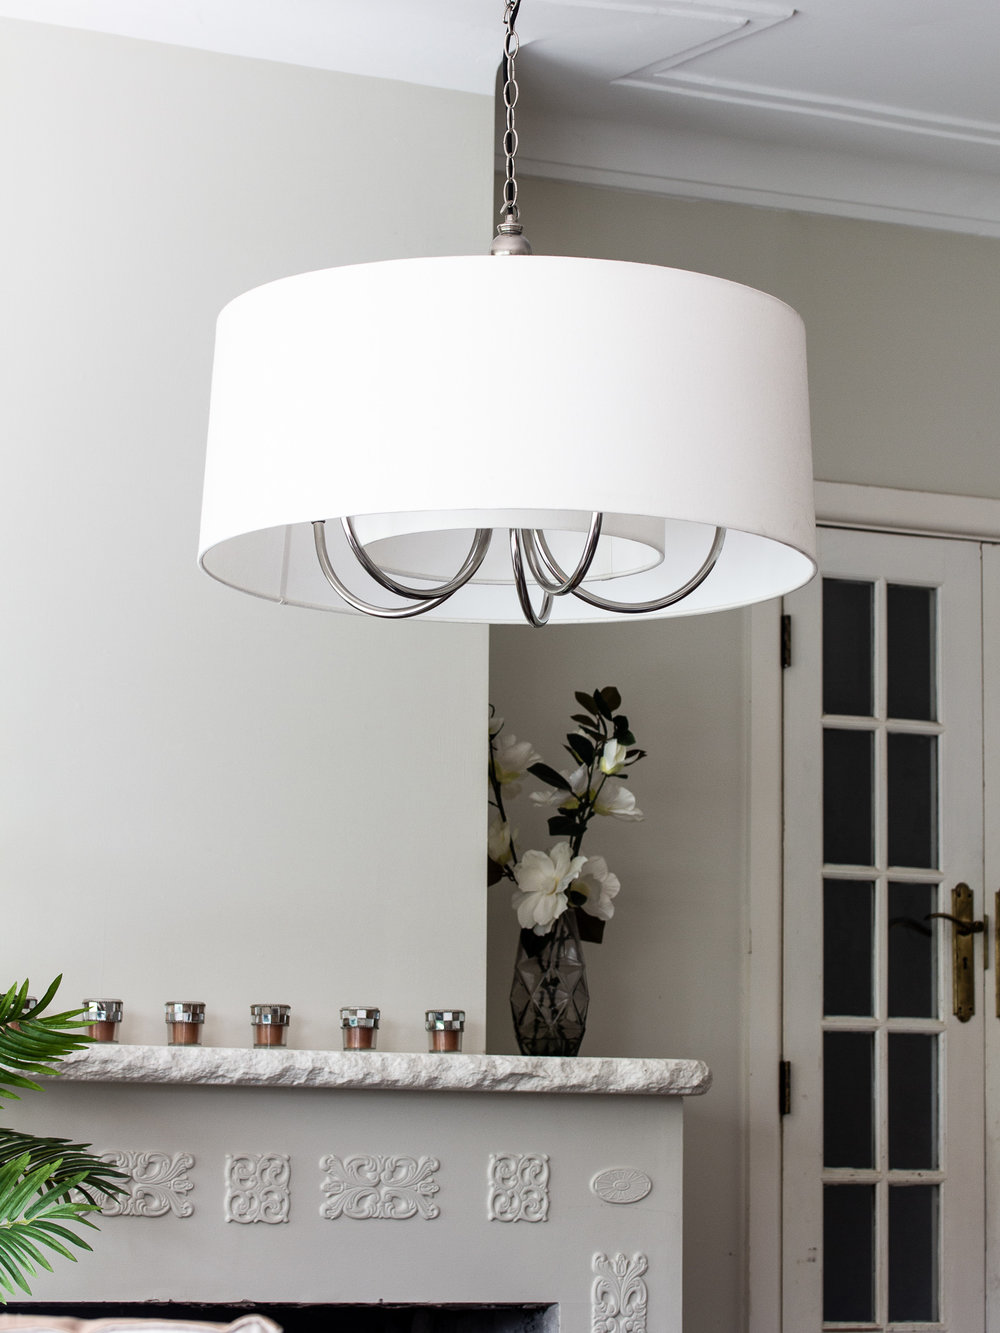 The Hampton Ceiling Light